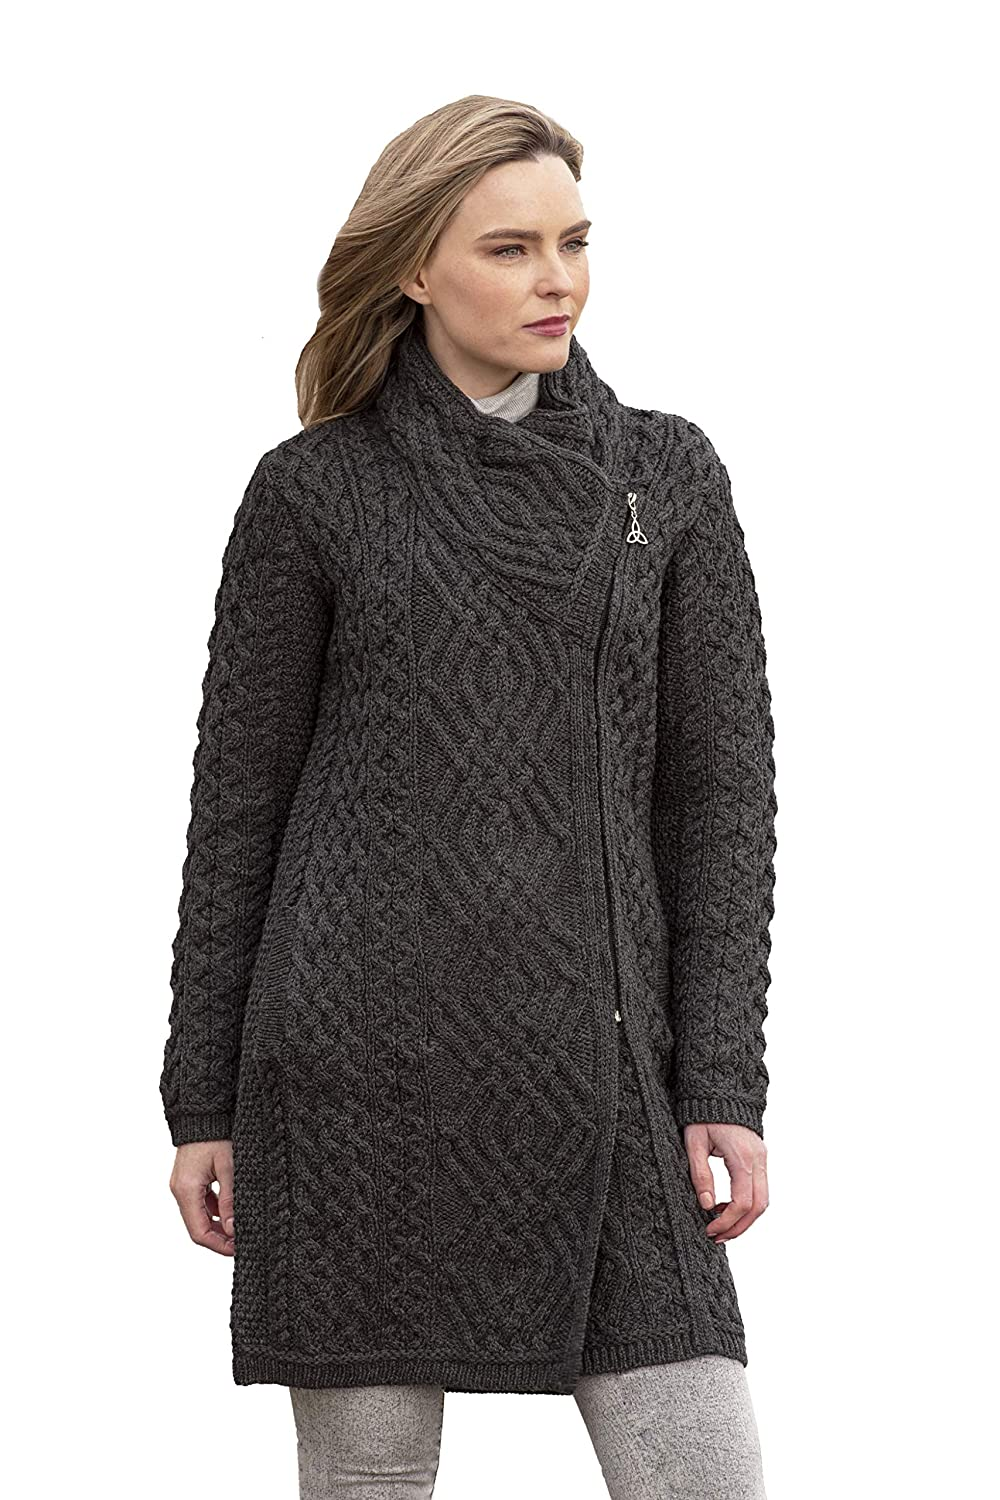 Charcoal Aran Crafts Cable Knit Side Zip Coat (100% Merino Wool) in Wine, Grey, Army Green Colours